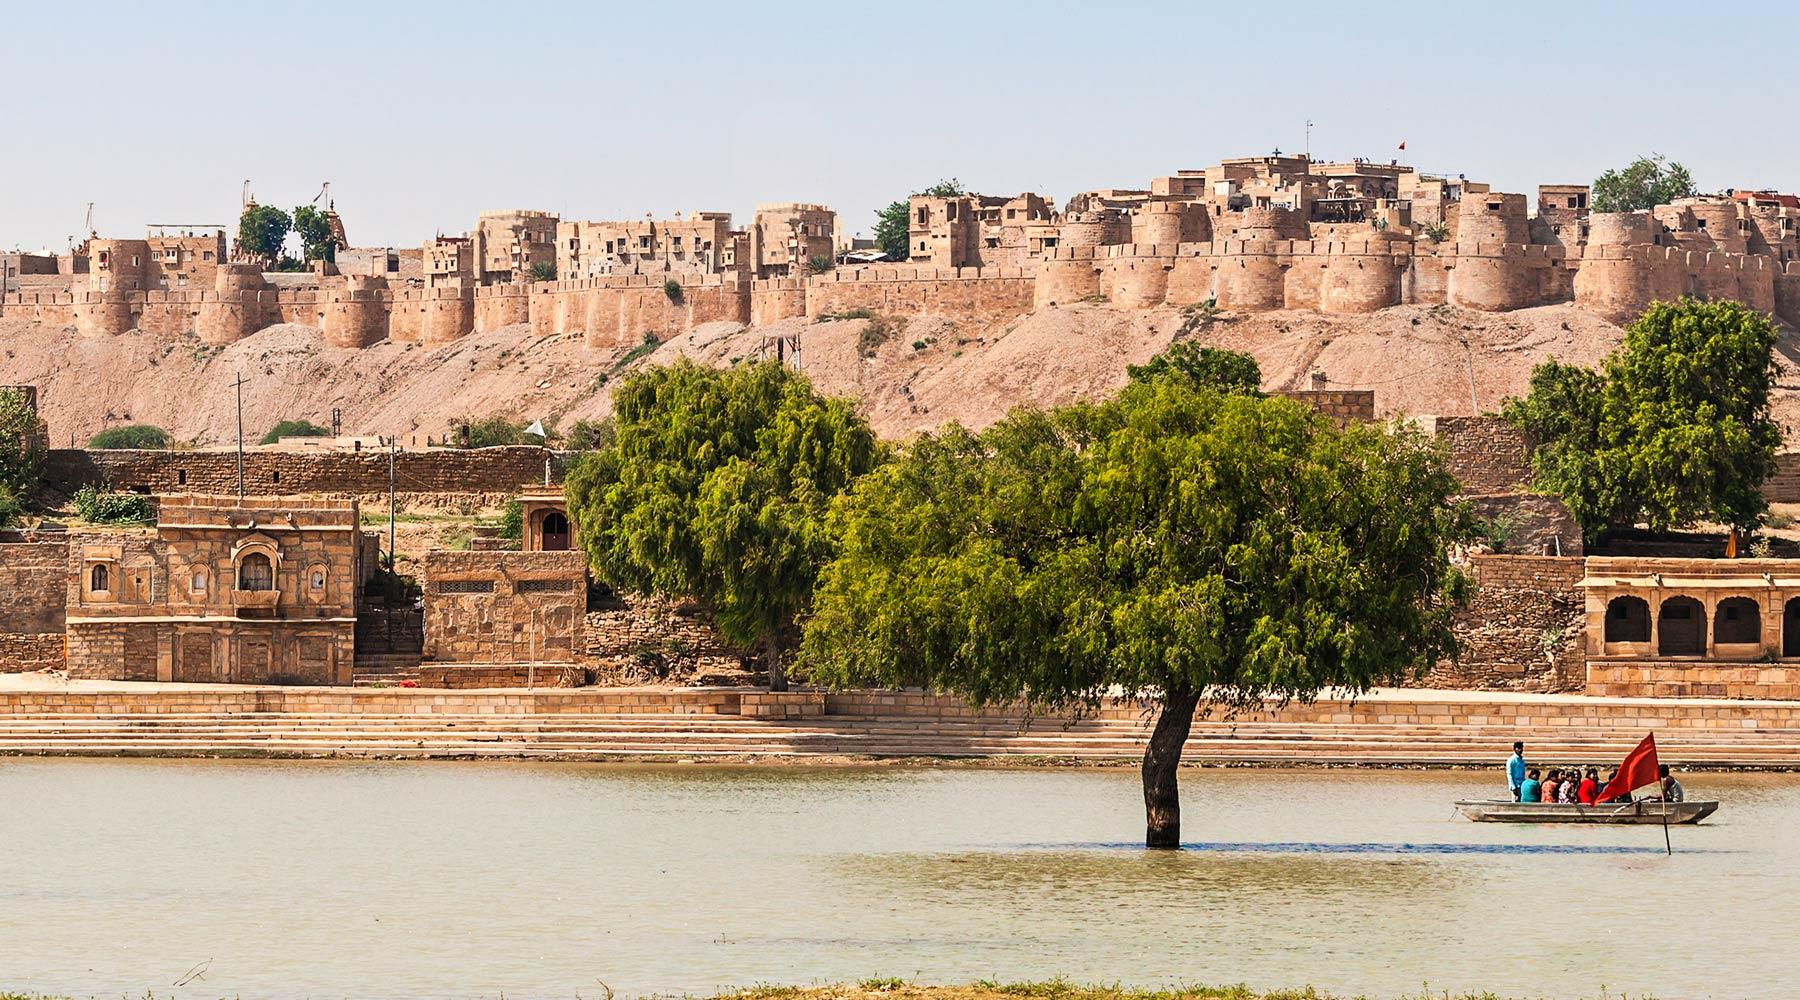 Holidays in Rajasthan & the Golden Triangle